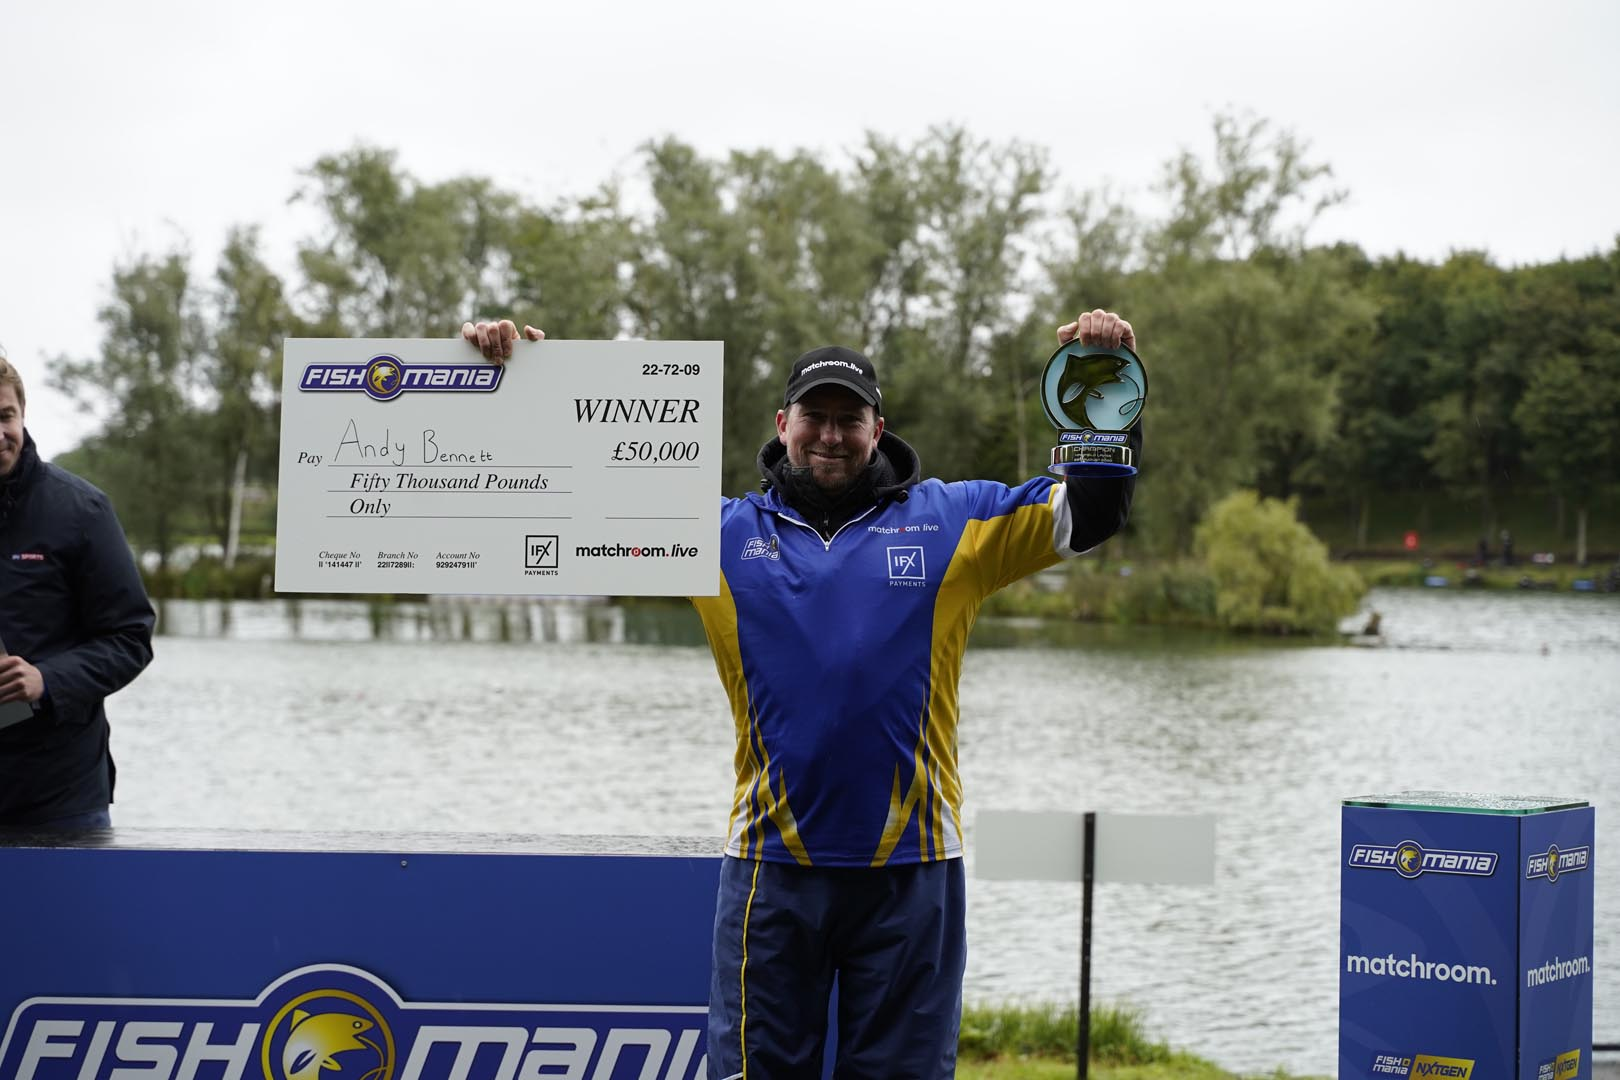 BENNETT IS BACK-TO-BACK FISHOMANIA CHAMPION